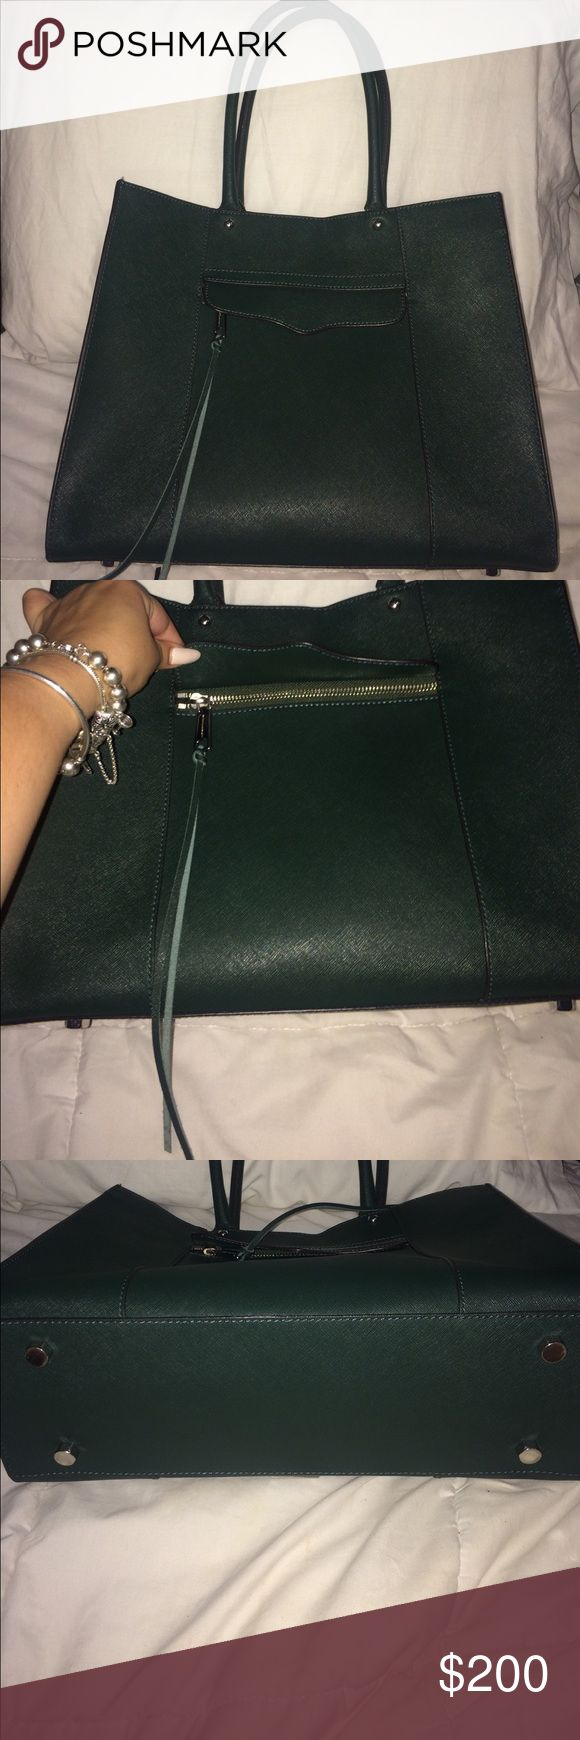 Rebecca minkoff purse Rebecca minkoff purse// forest green color // great condition no flaws will applied more pics if needed Rebecca Minkoff Bags